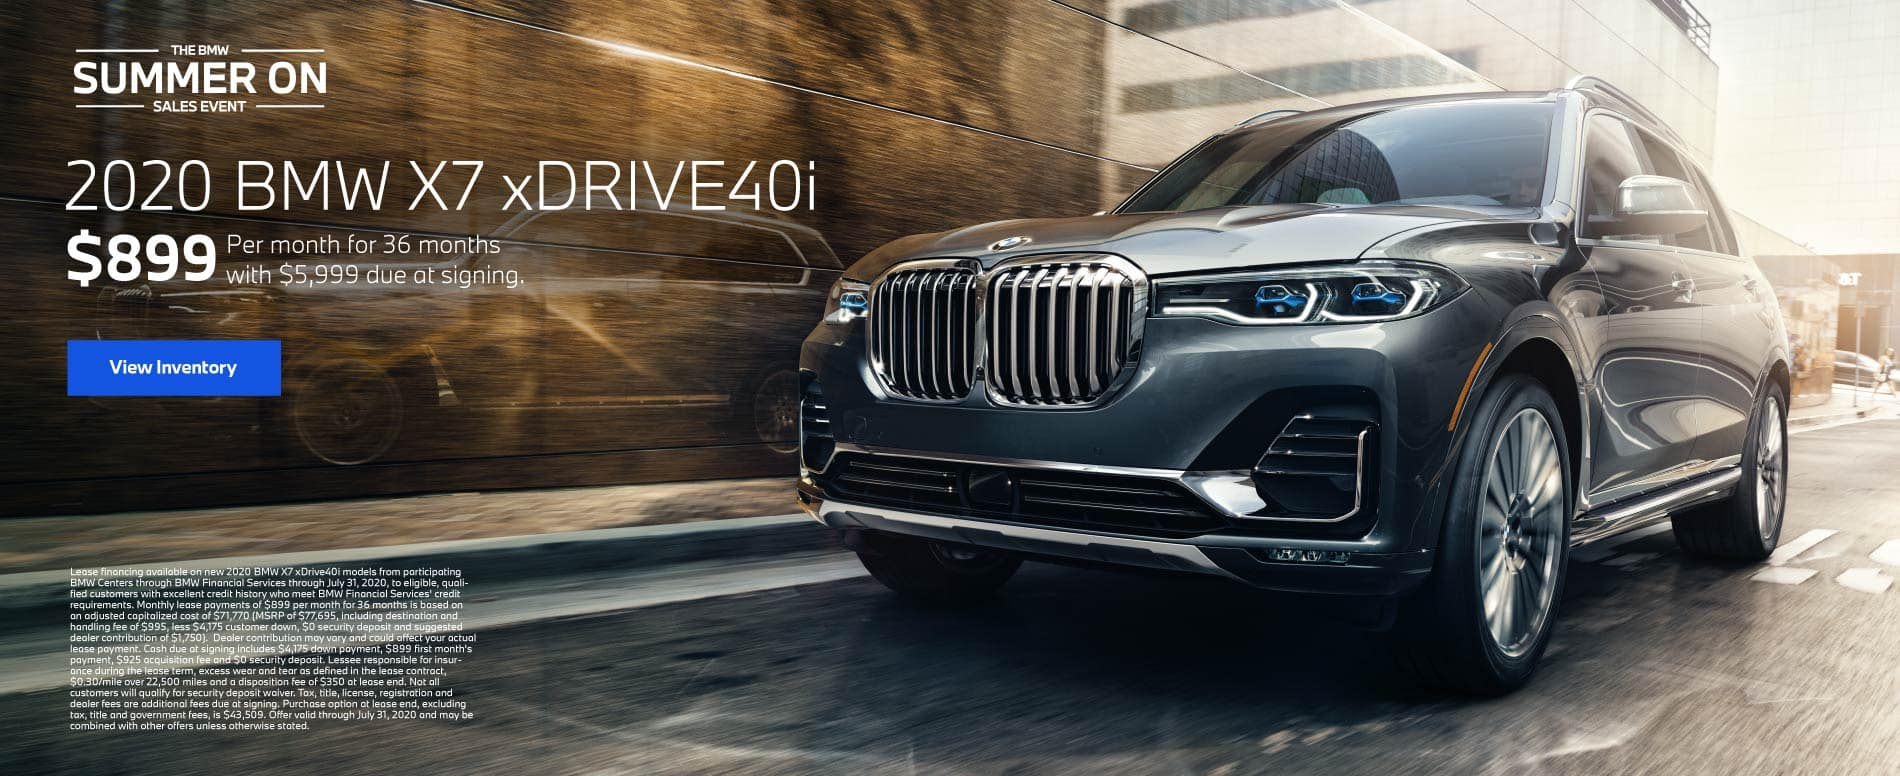 2020 BMW X7 xDrive40i $899 a month for 36 months | View Inventory